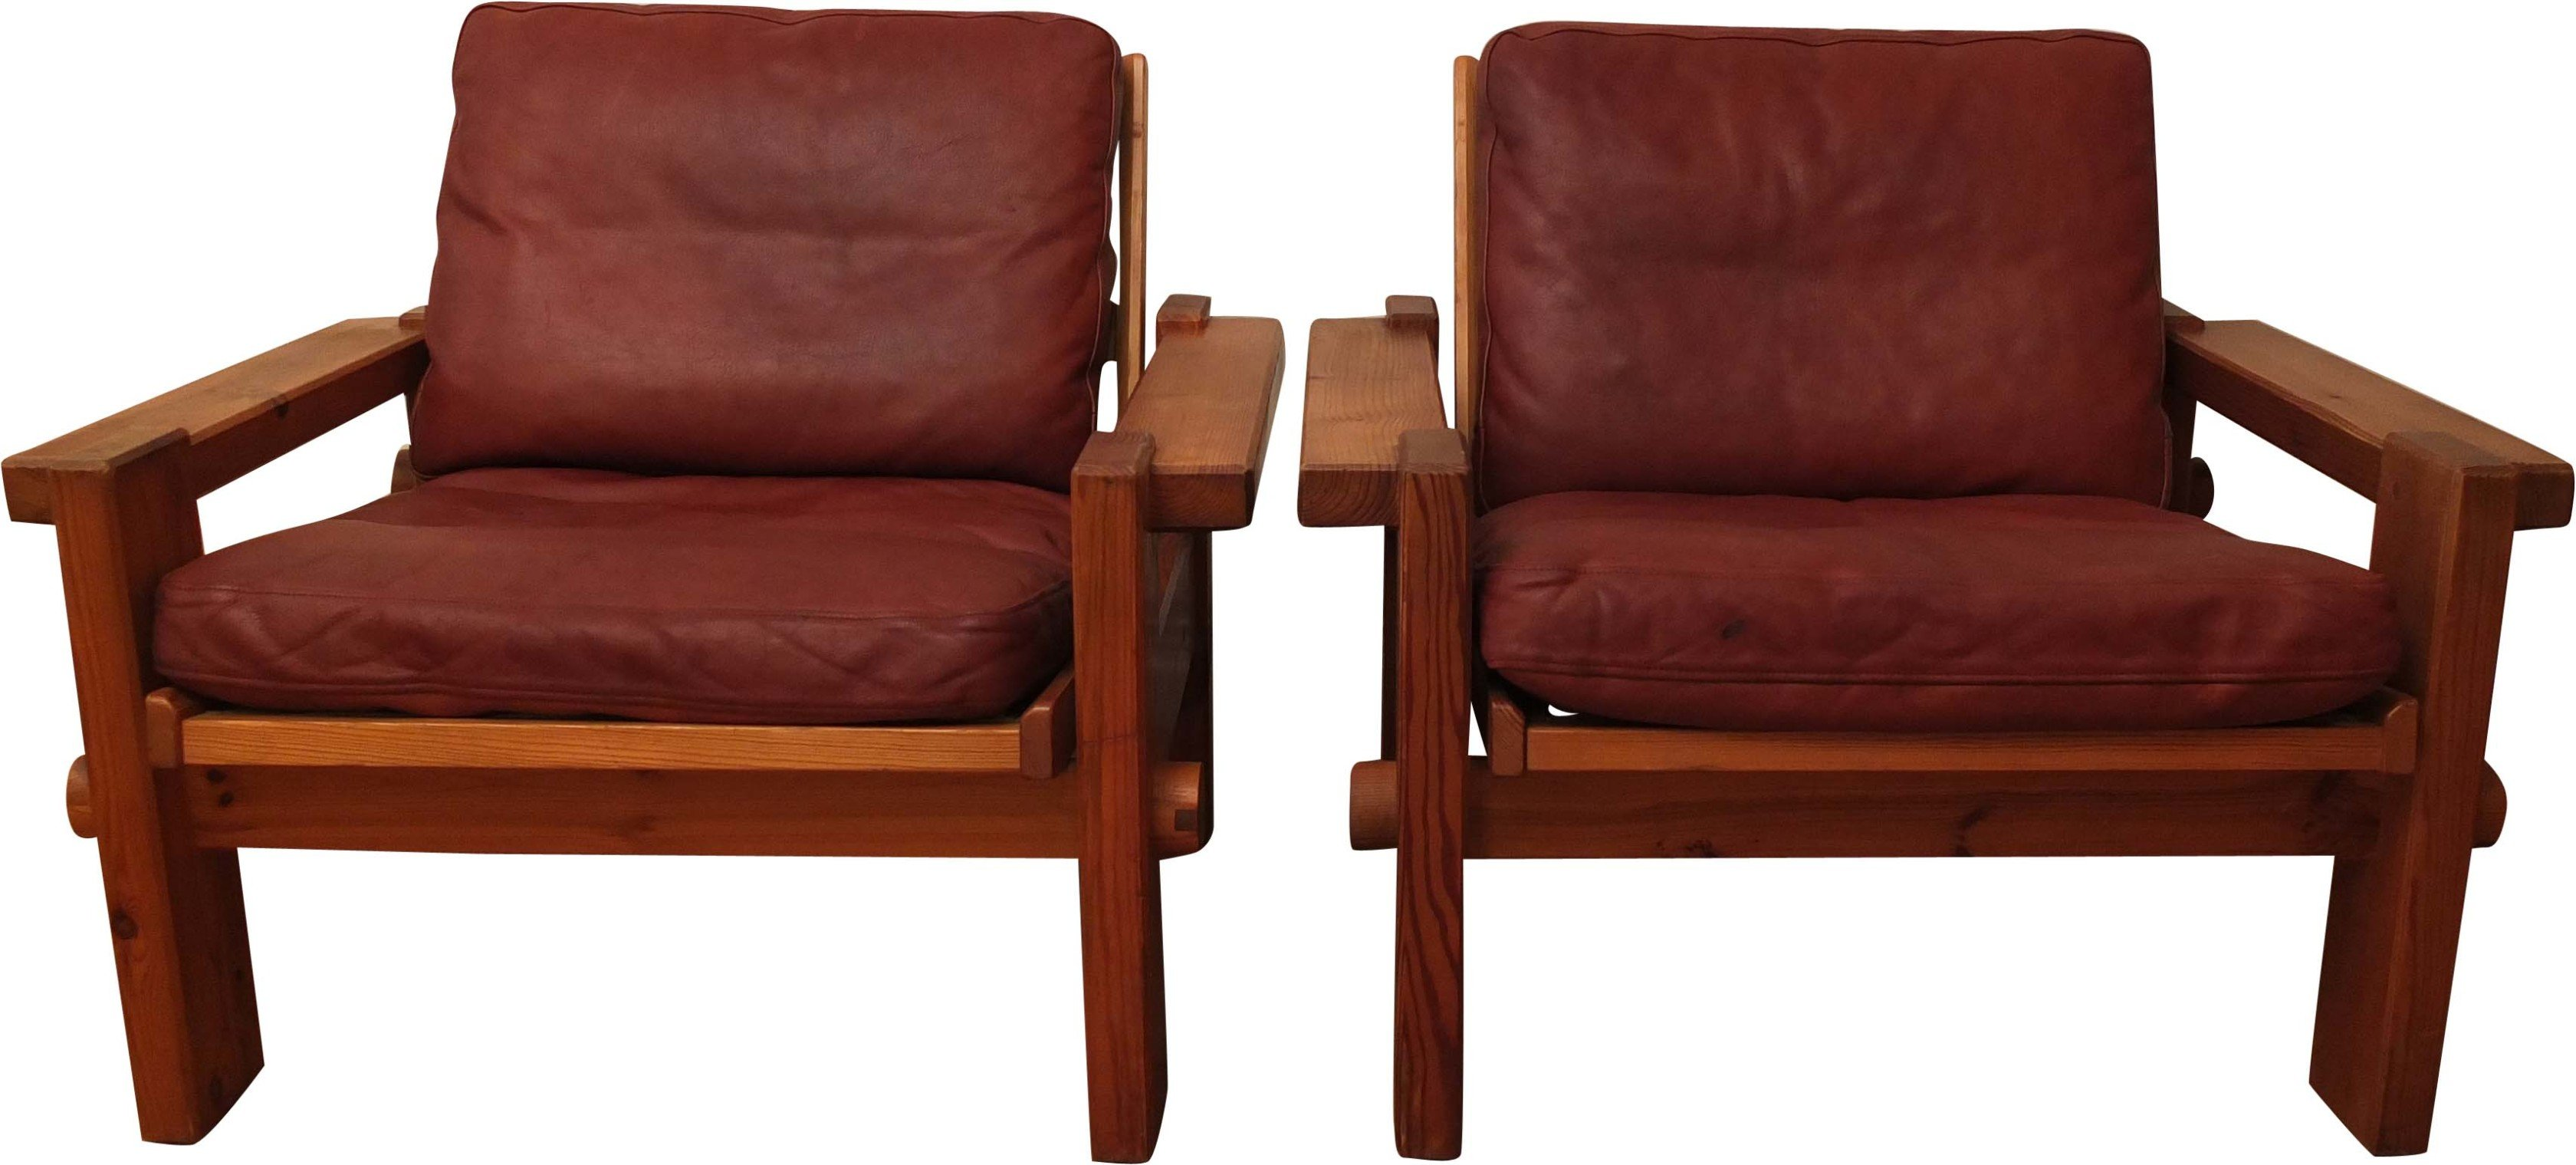 Pair of Kontrapunkt Club Chairs by Y. Ekstrom for Swedese, 1970s